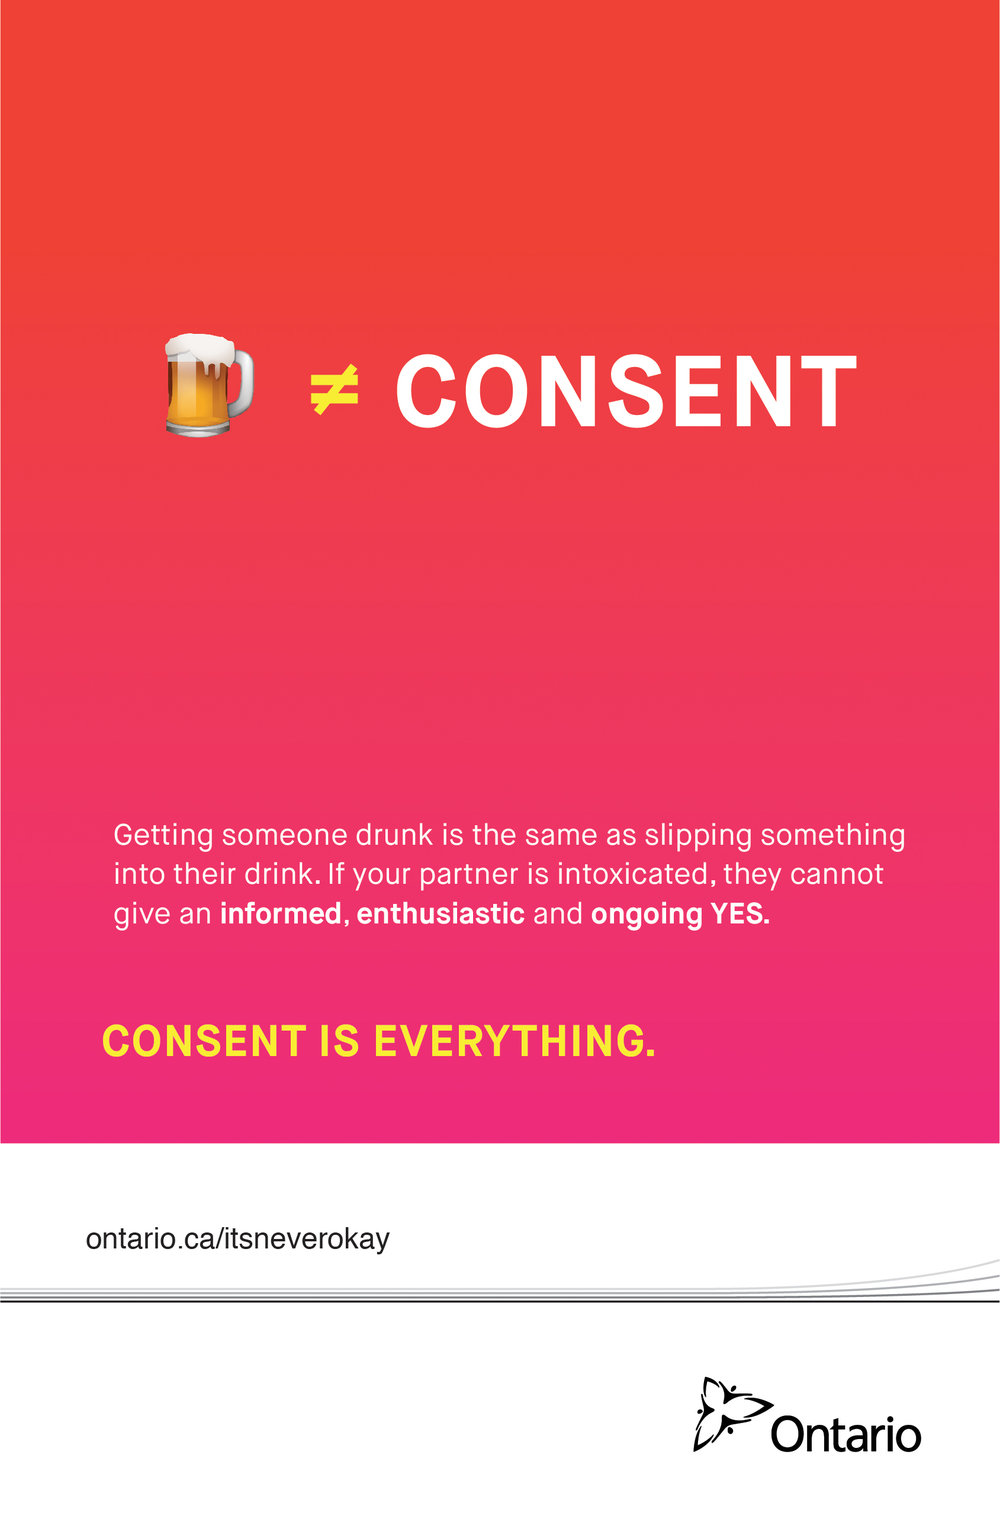 consent_concepts_emoji-drink copy.jpg